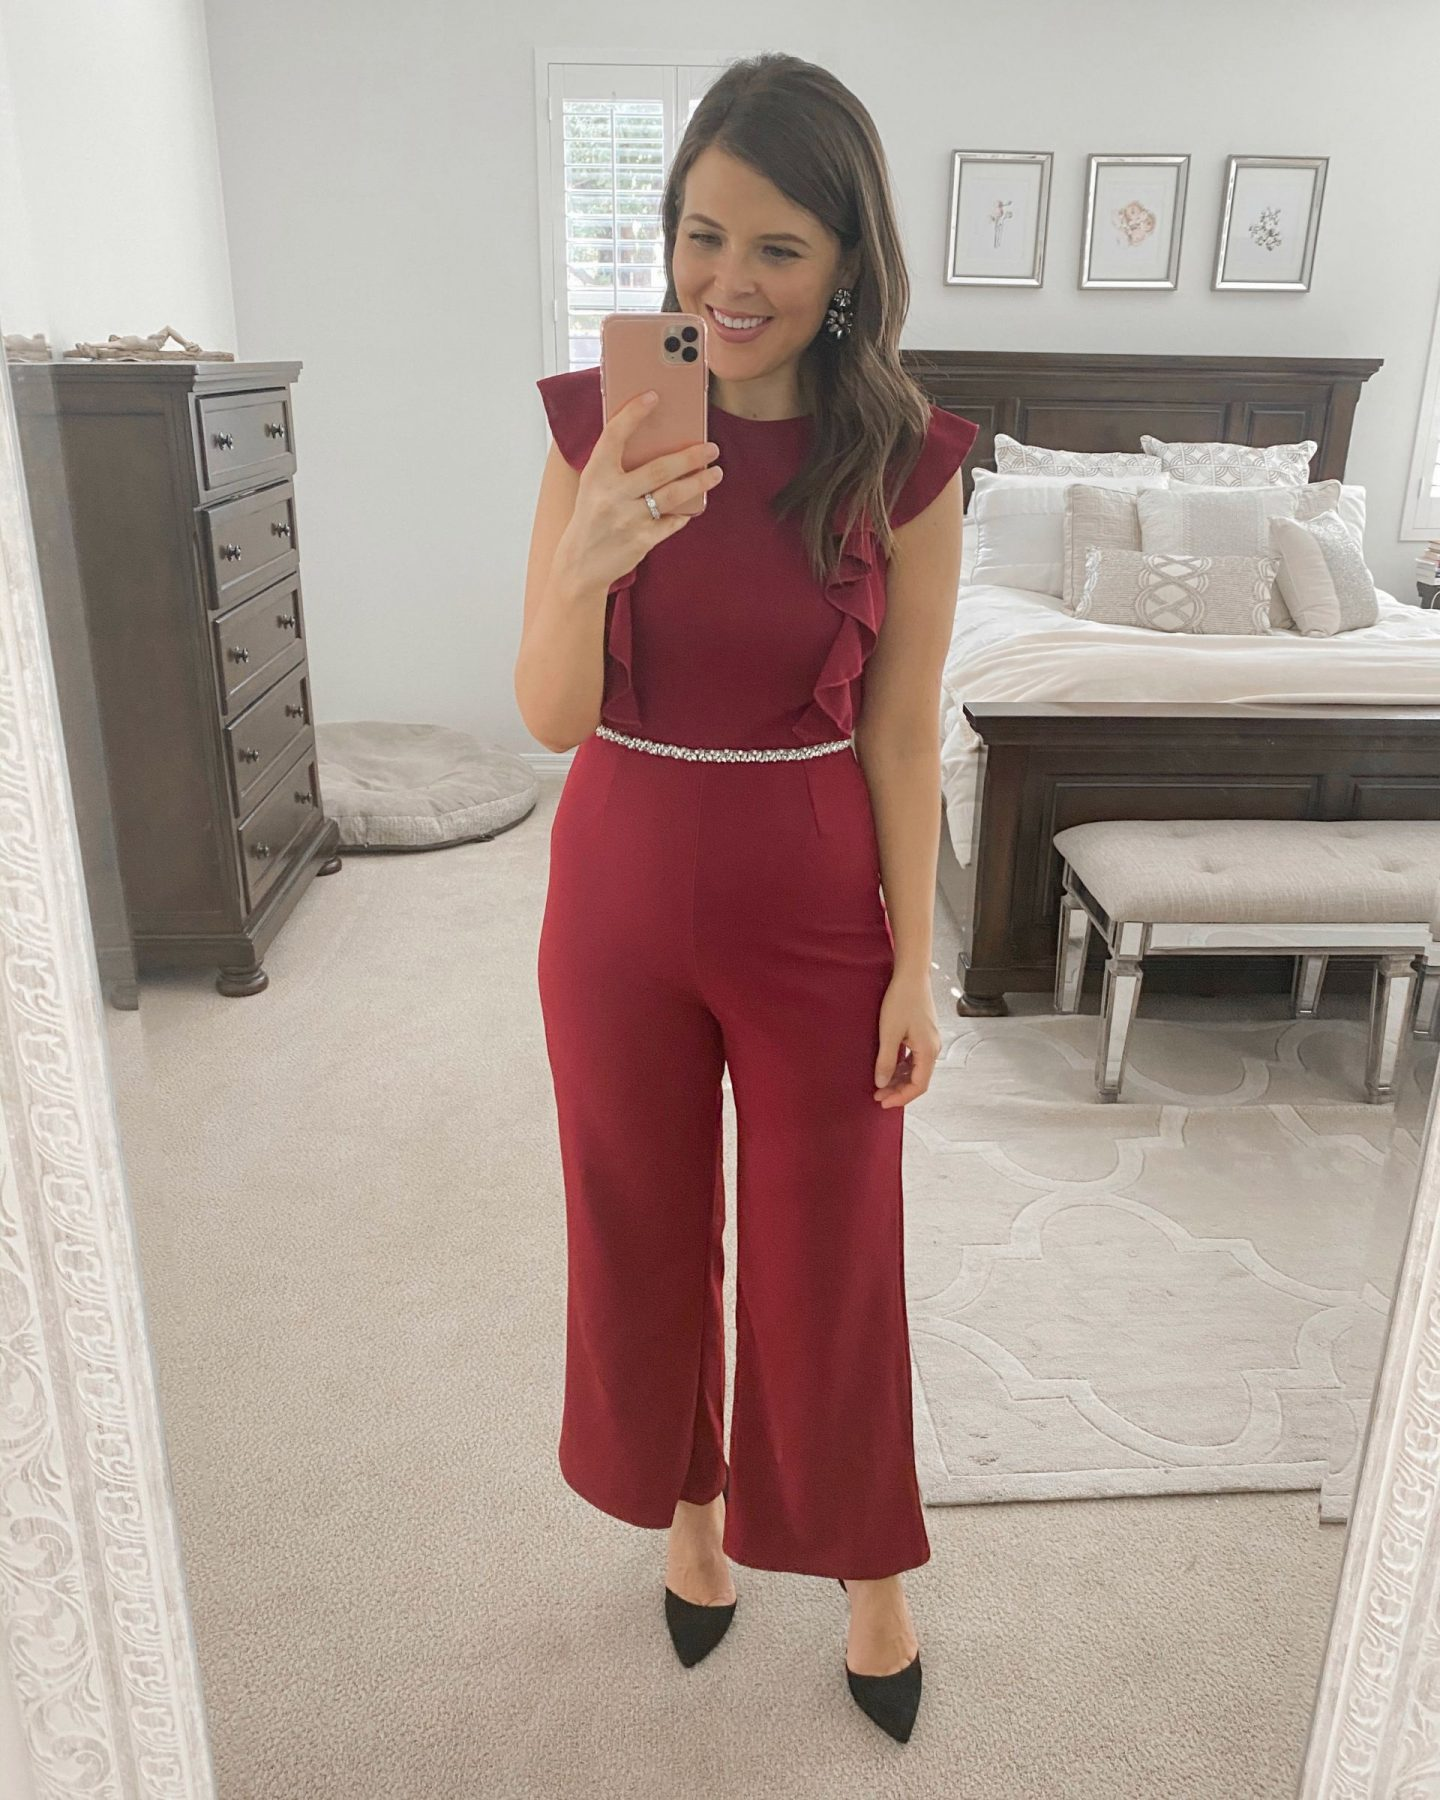 amazon holiday party looks christmas outfits 2019 brie bemis rearick red jumpsuit